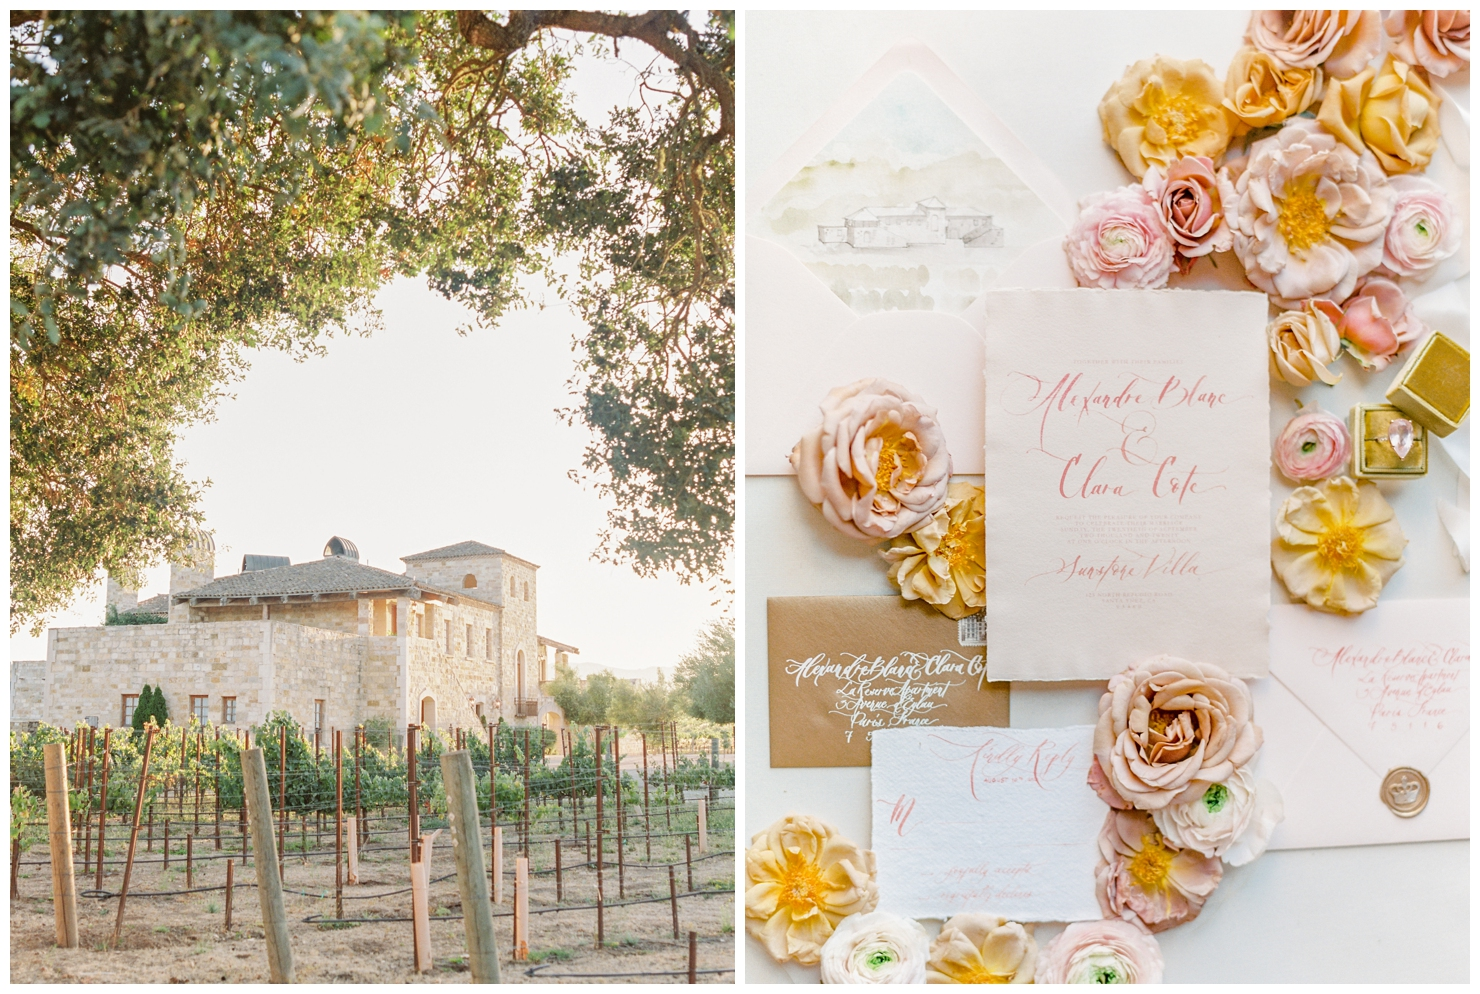 Stylish And Summery Wedding At A Winery In Greece Wedding Stationery